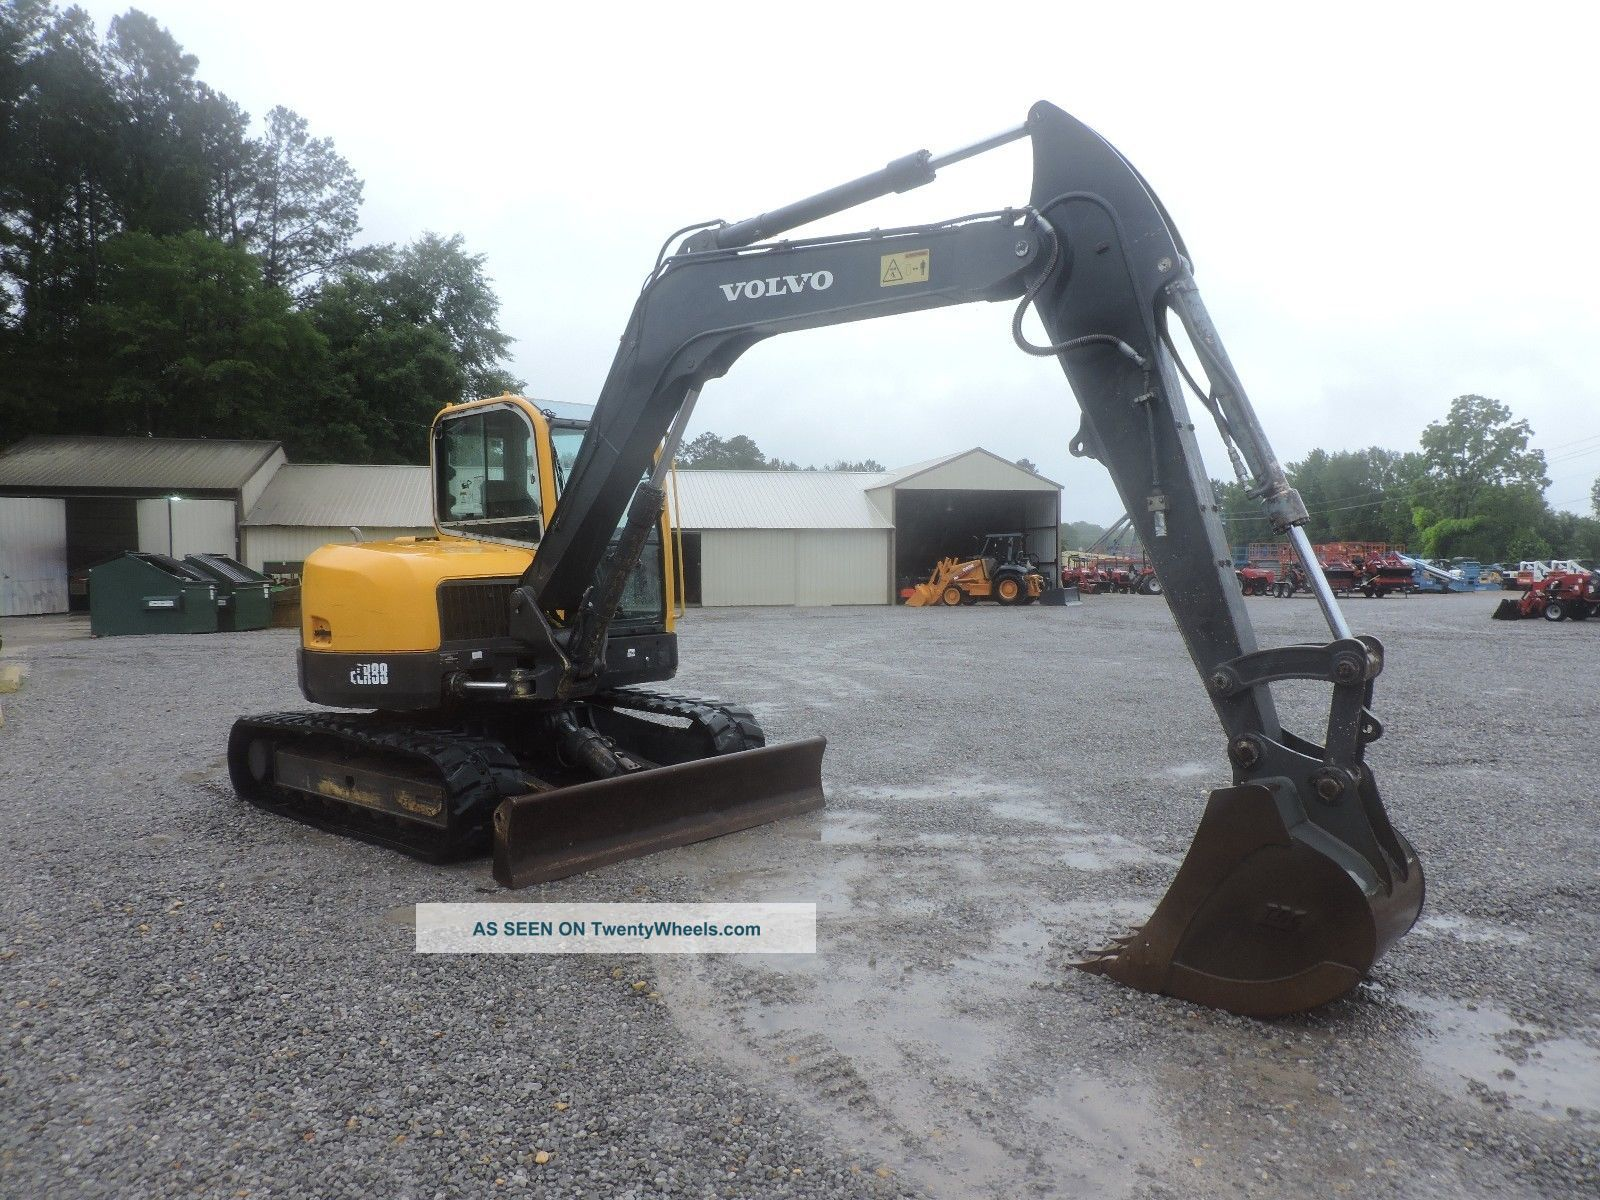 2011 Volvo Ecr88 Excavator - Caterpillar - Deere - Bobcat - Fully Enclosed Cab Excavators photo